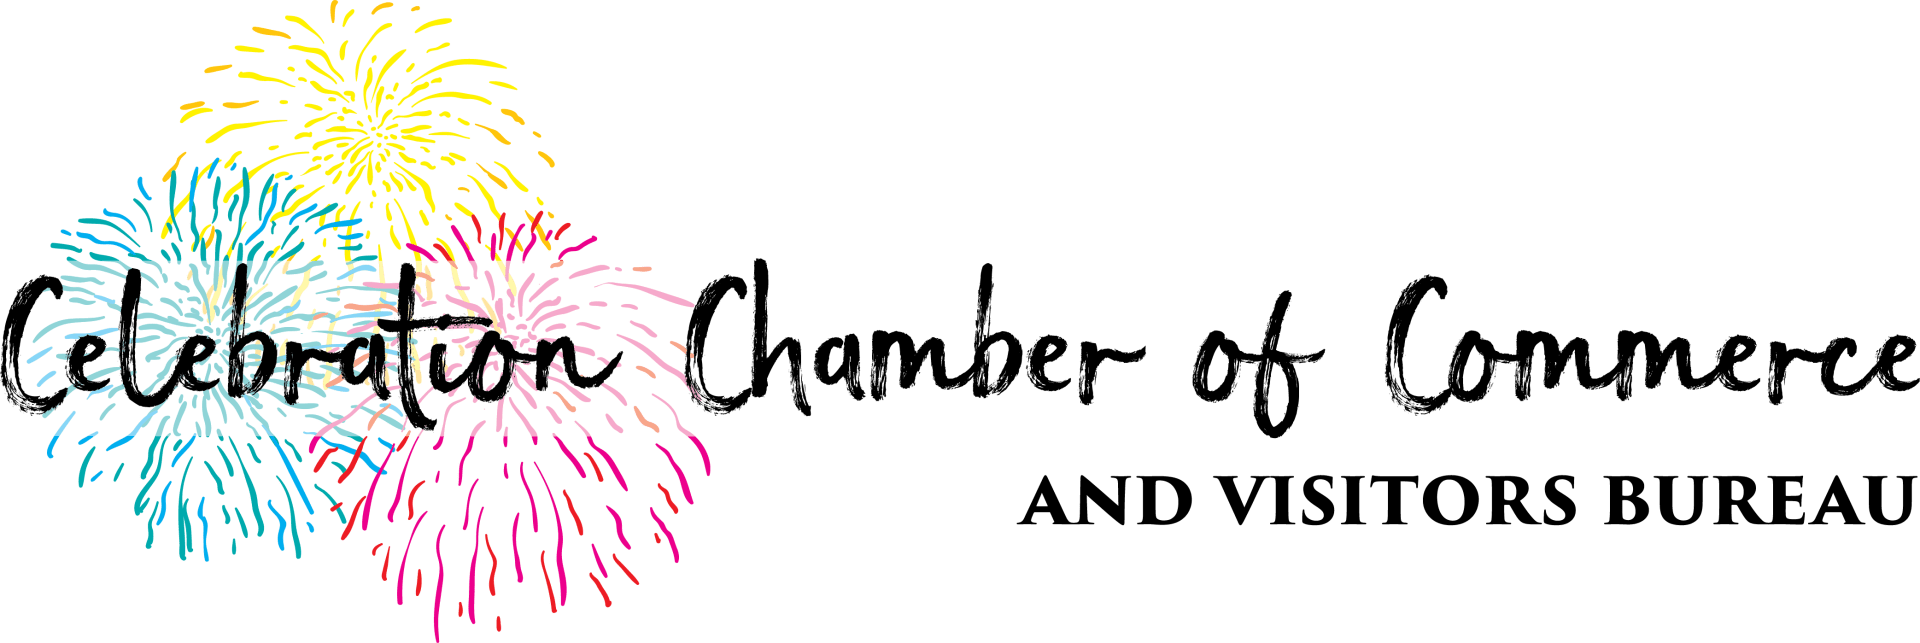 Celebration Chamber of Commerce and Visitors Bureau  Also serving ChampionsGate,Reunion and Davenport